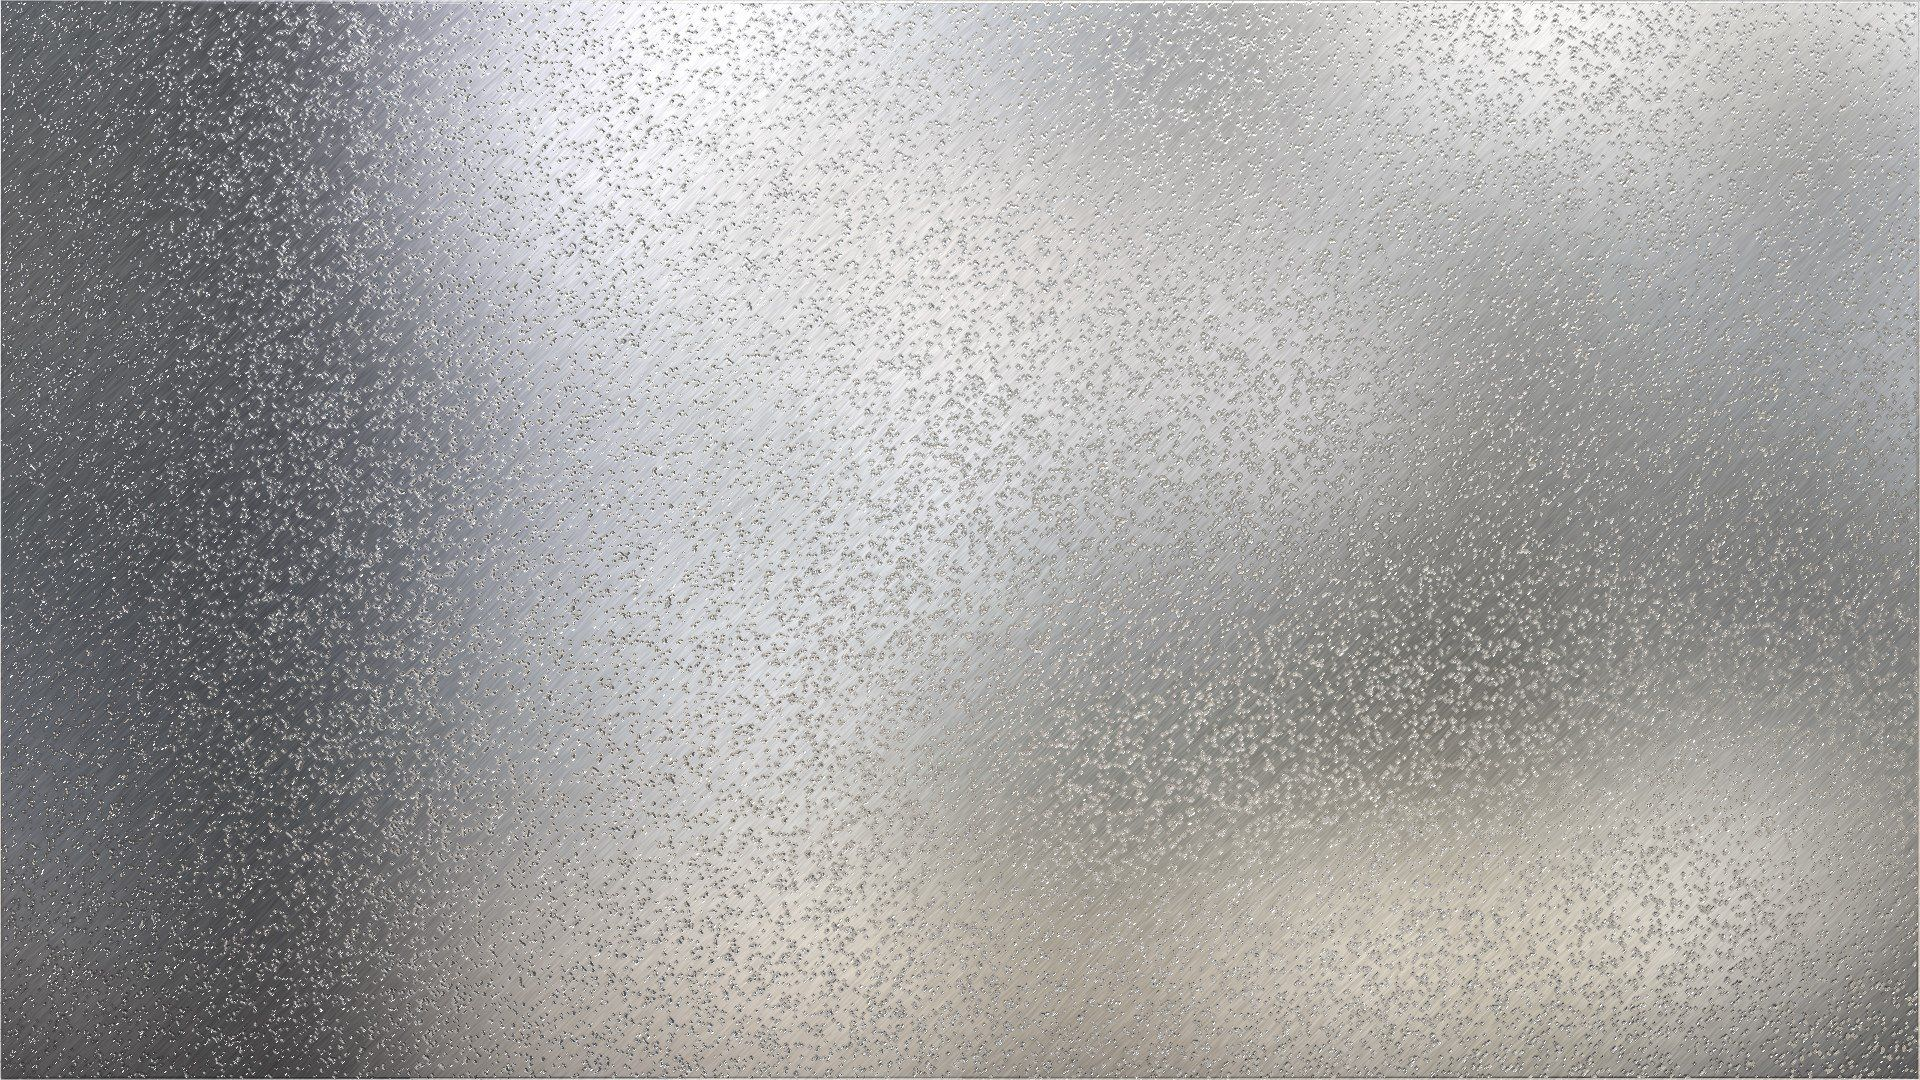 white glass textures backgrounds pattern pinterest